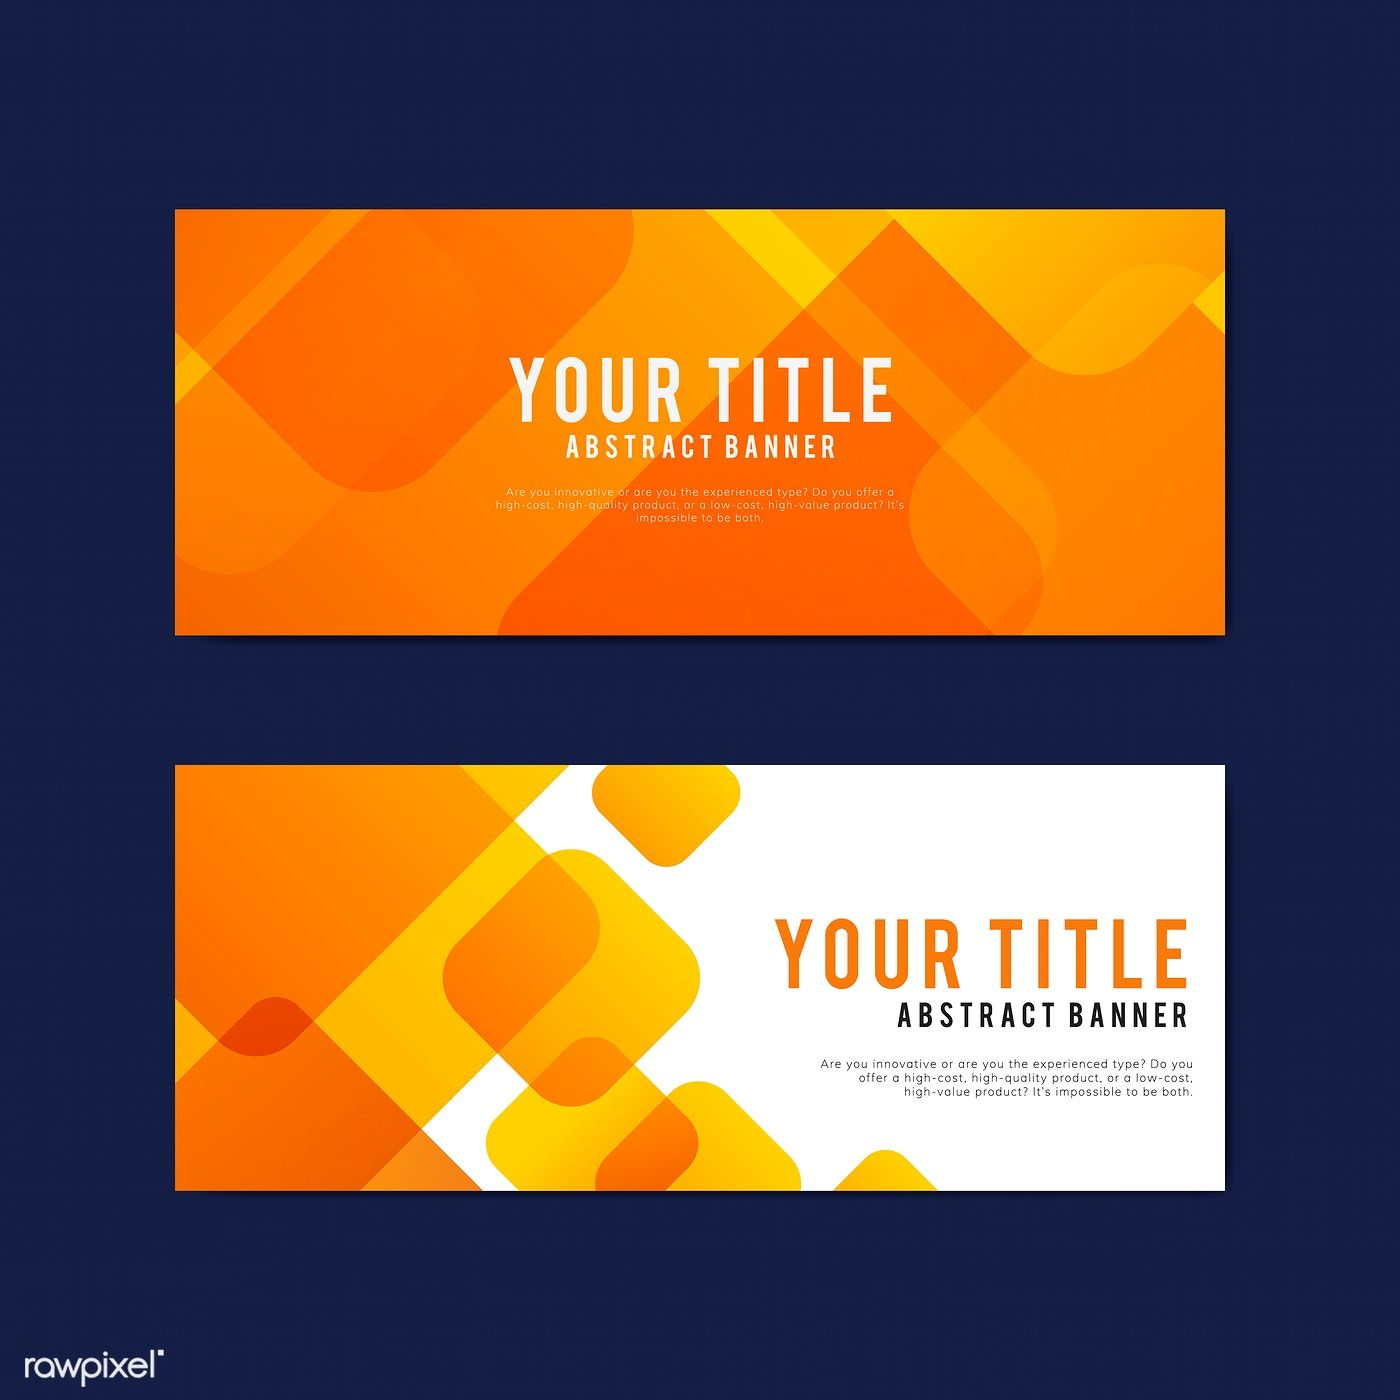 Colorful And Abstract Banner Design Templates Free Image By Rawpixel Com Tvzsu Banner Design Template Design Banner Template Design